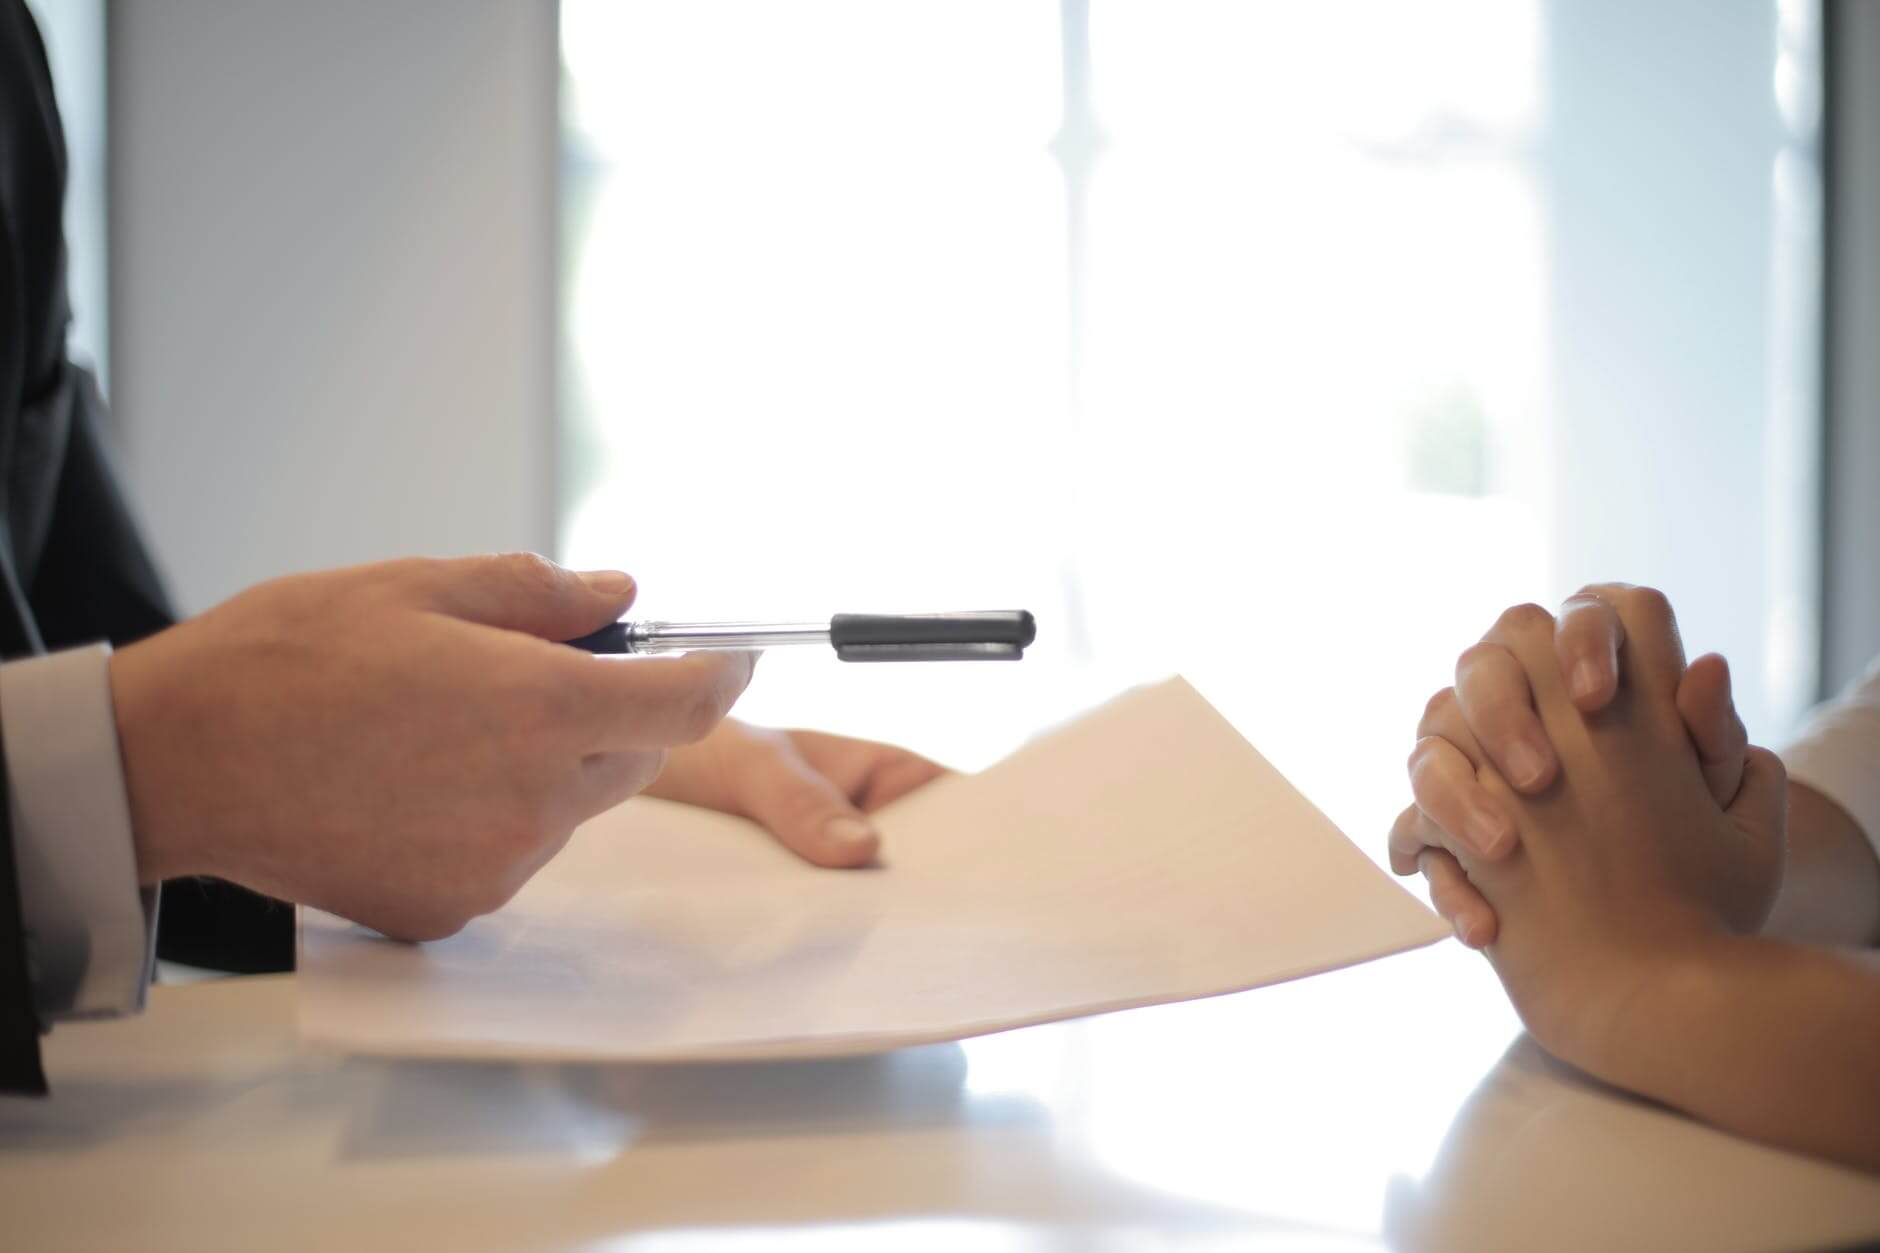 There are certain regulations regarding applying for an apartment